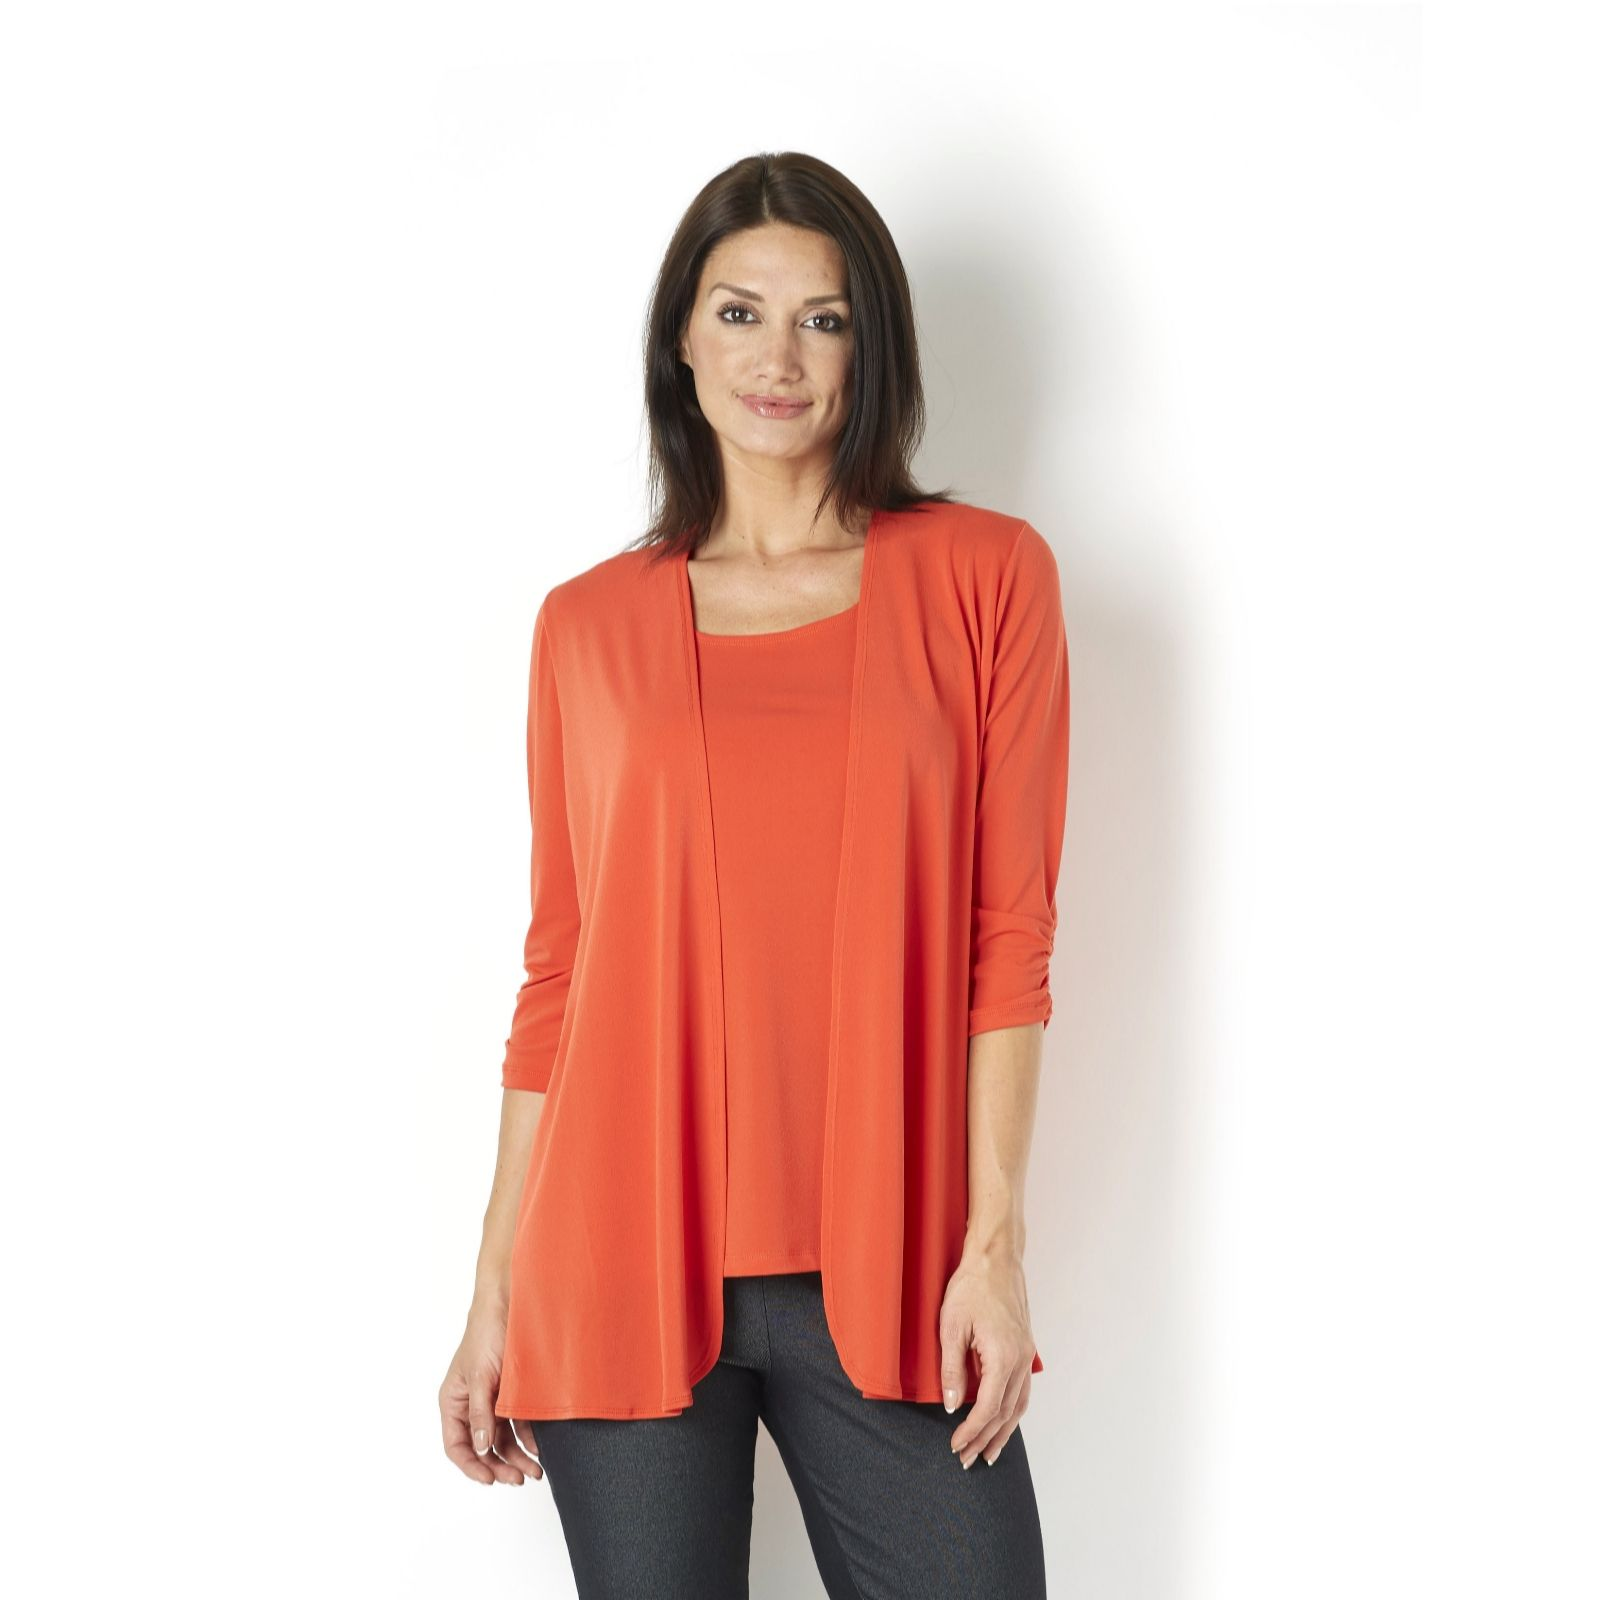 Kim & Co Stretch Crepe 3/4 Ruched Sleeve Edge to Edge Cardigan - Page 1 -  QVC UK